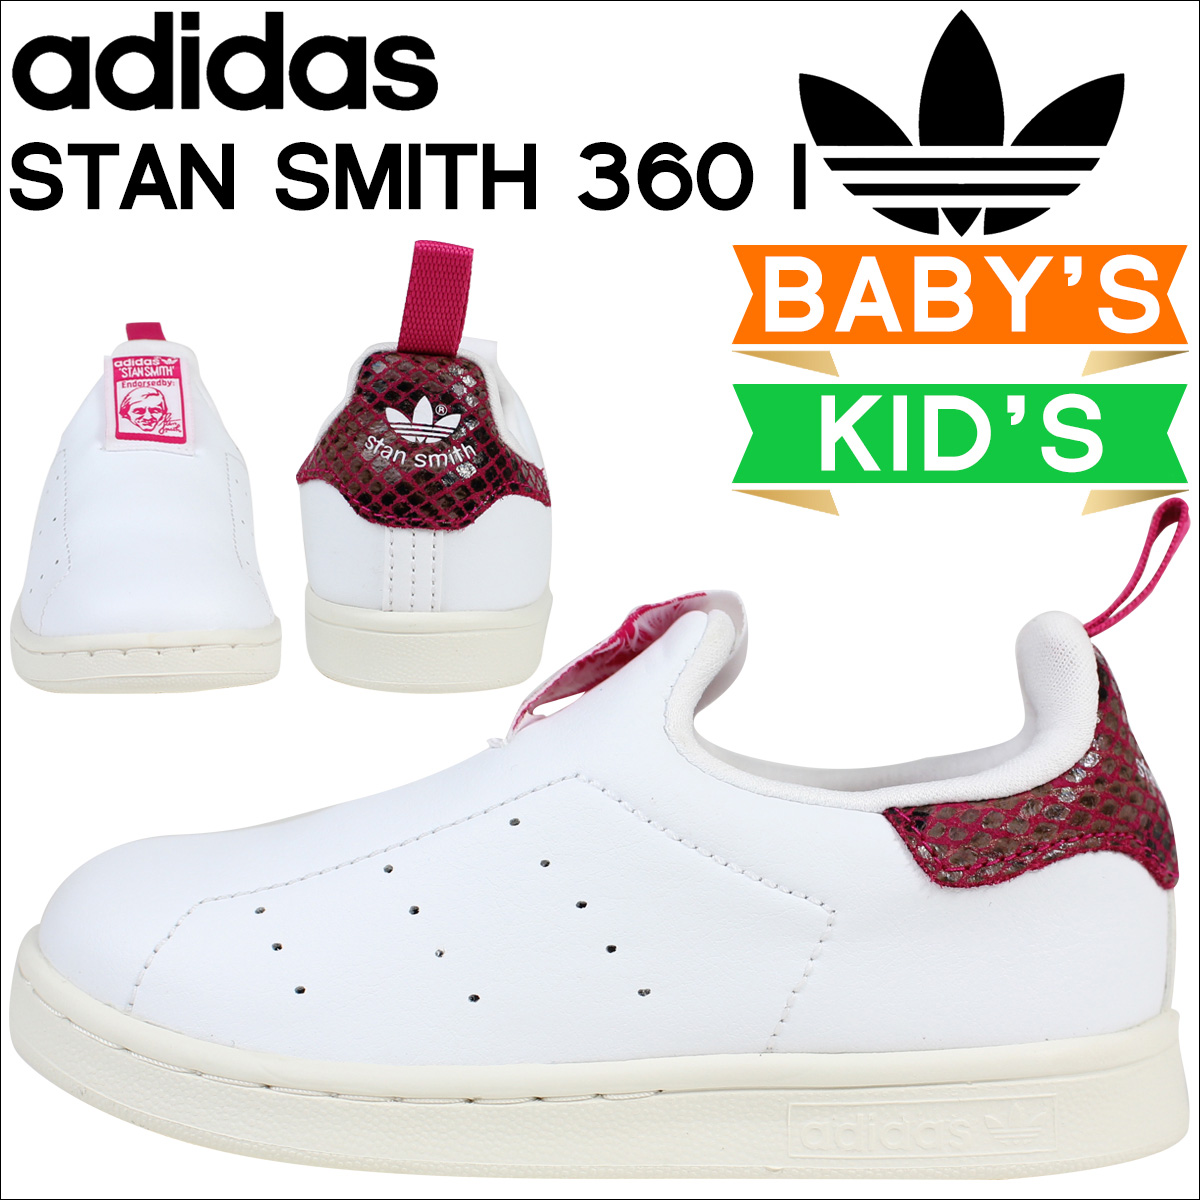 adidas adidas Stan Smith sneakers baby kids STAN SMITH 360 I S32129 shoes  white [9